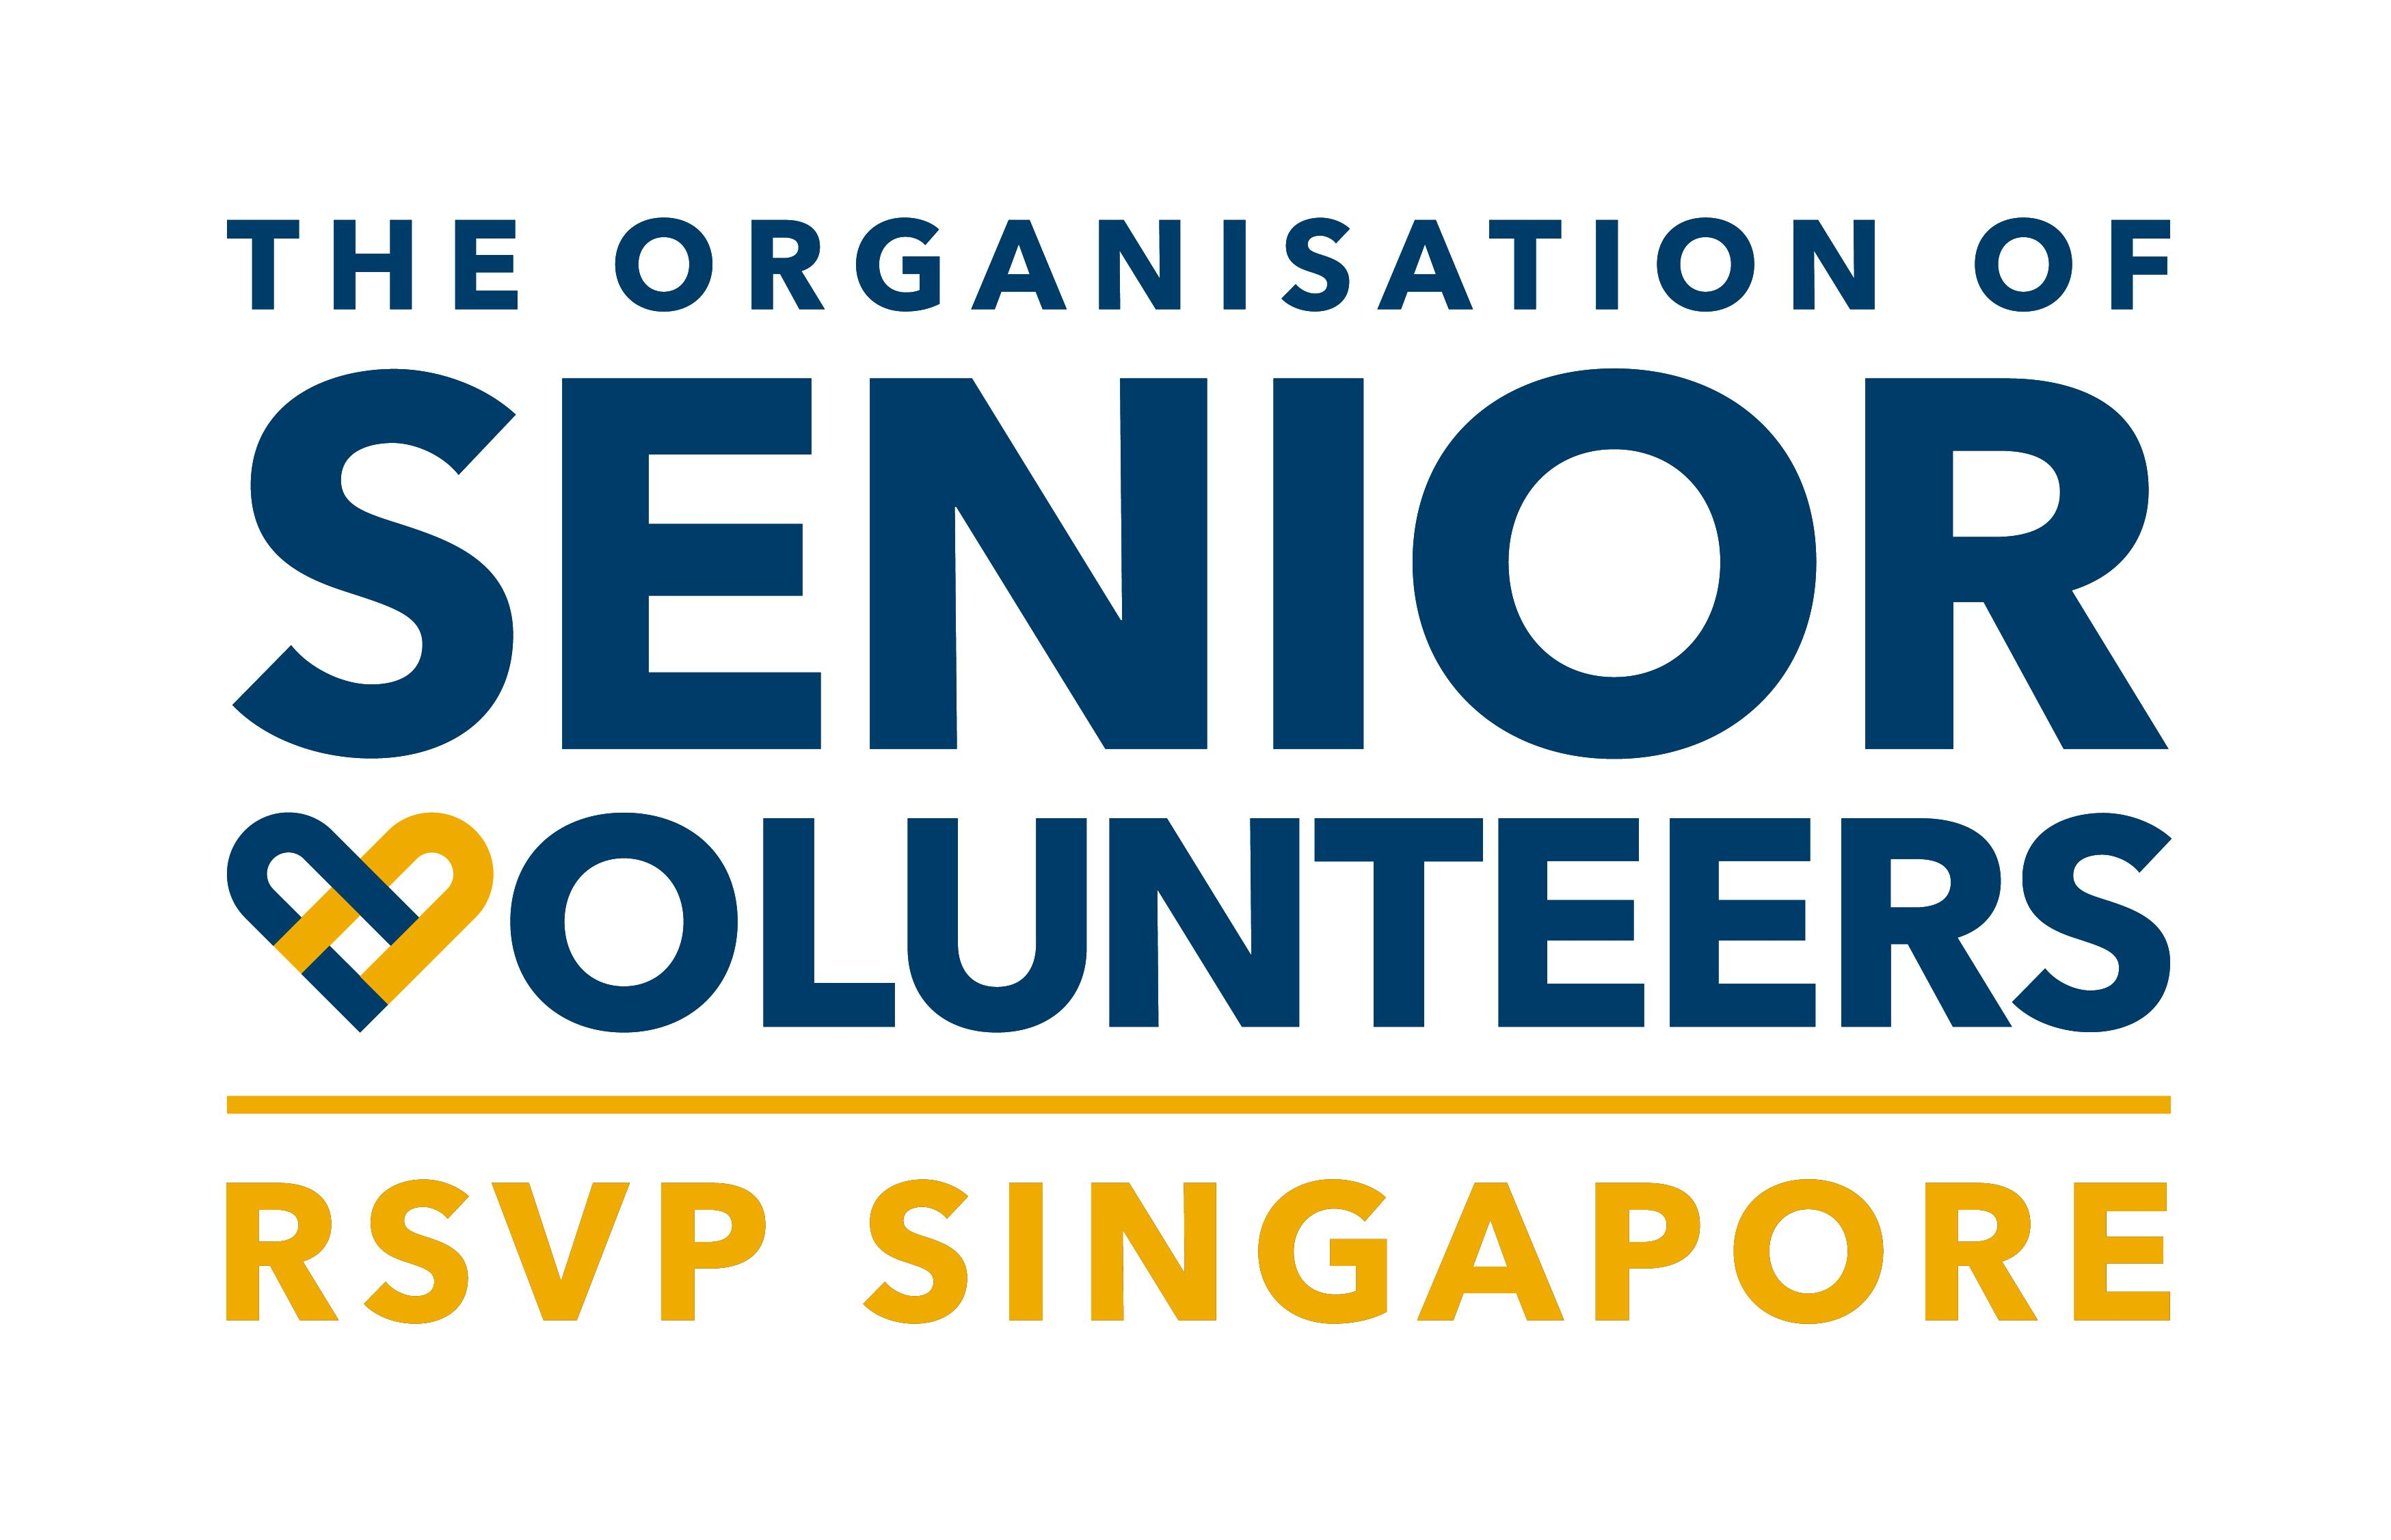 RSVP Singapore - The Organisation of Senior Volunteers